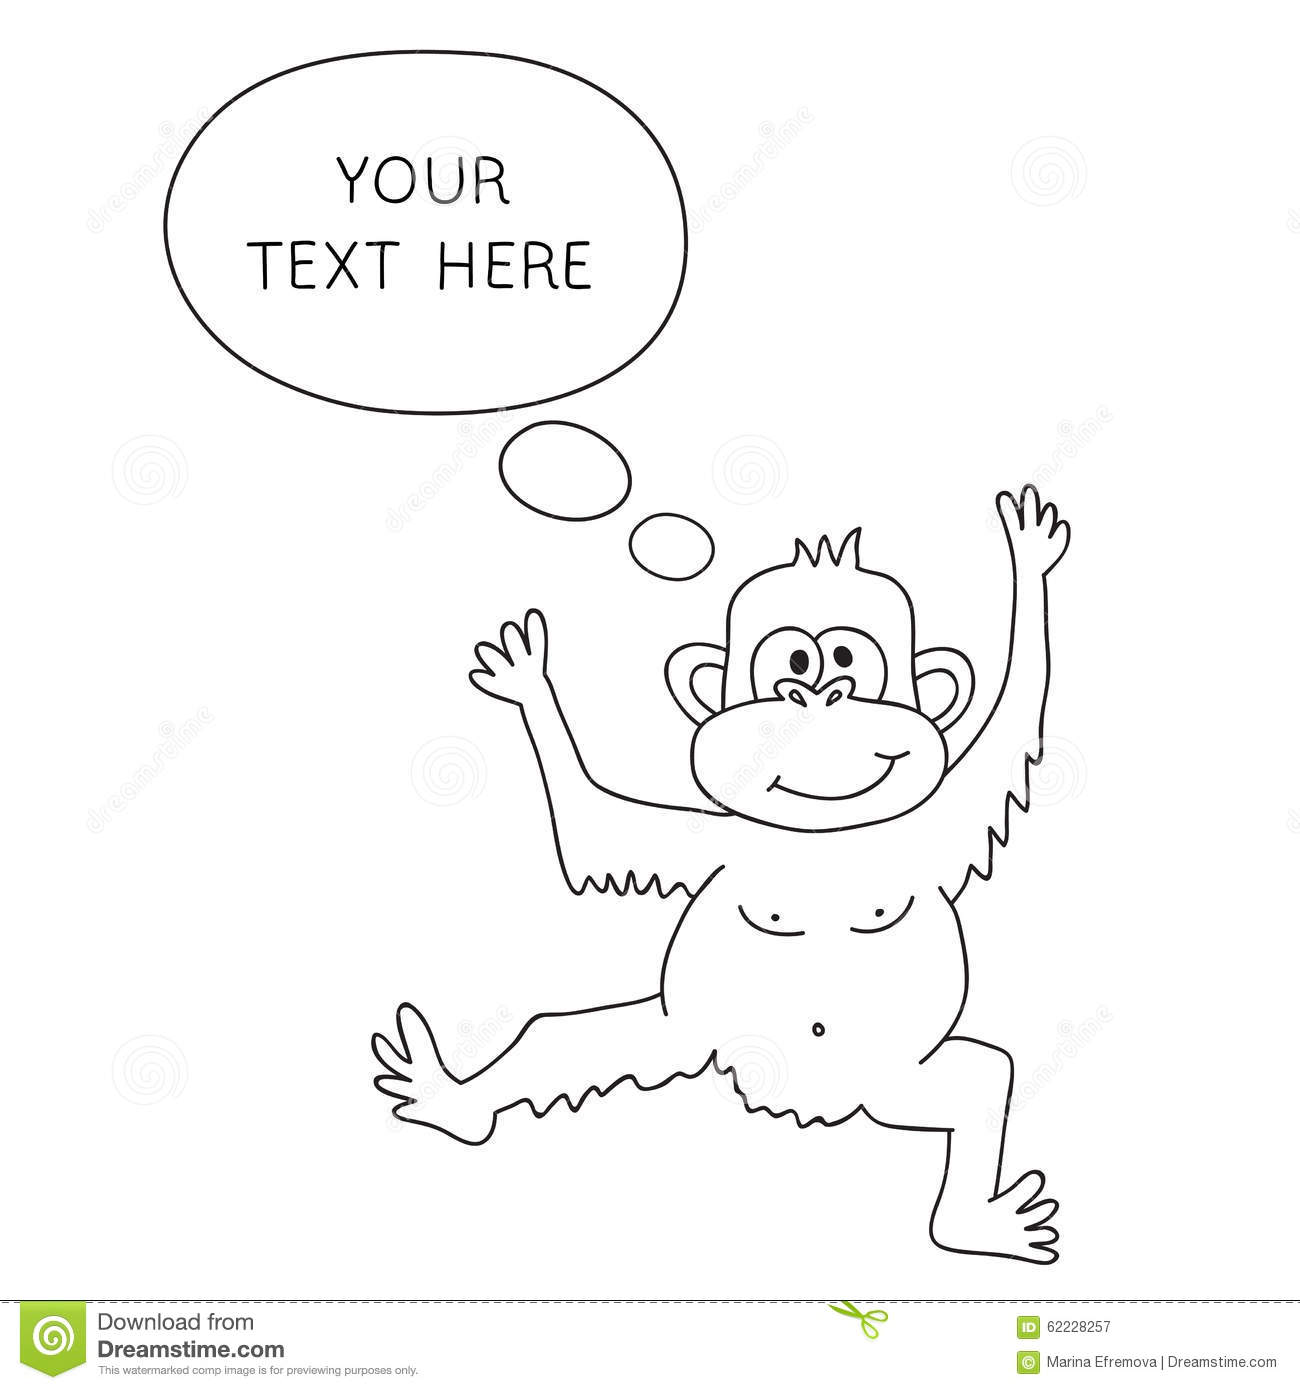 Dibujos De Jirafas in addition Stock Illustration Vector Funny Monkey Speech Bubble Illustration Card Hand Drawn Monkey Bubble Speech You Can Put Your Own Text Image62228257 furthermore 83871 Simple Vintage Frame as well Clock Face Template Blank furthermore Blank Fantasy World Map. on blank hand template